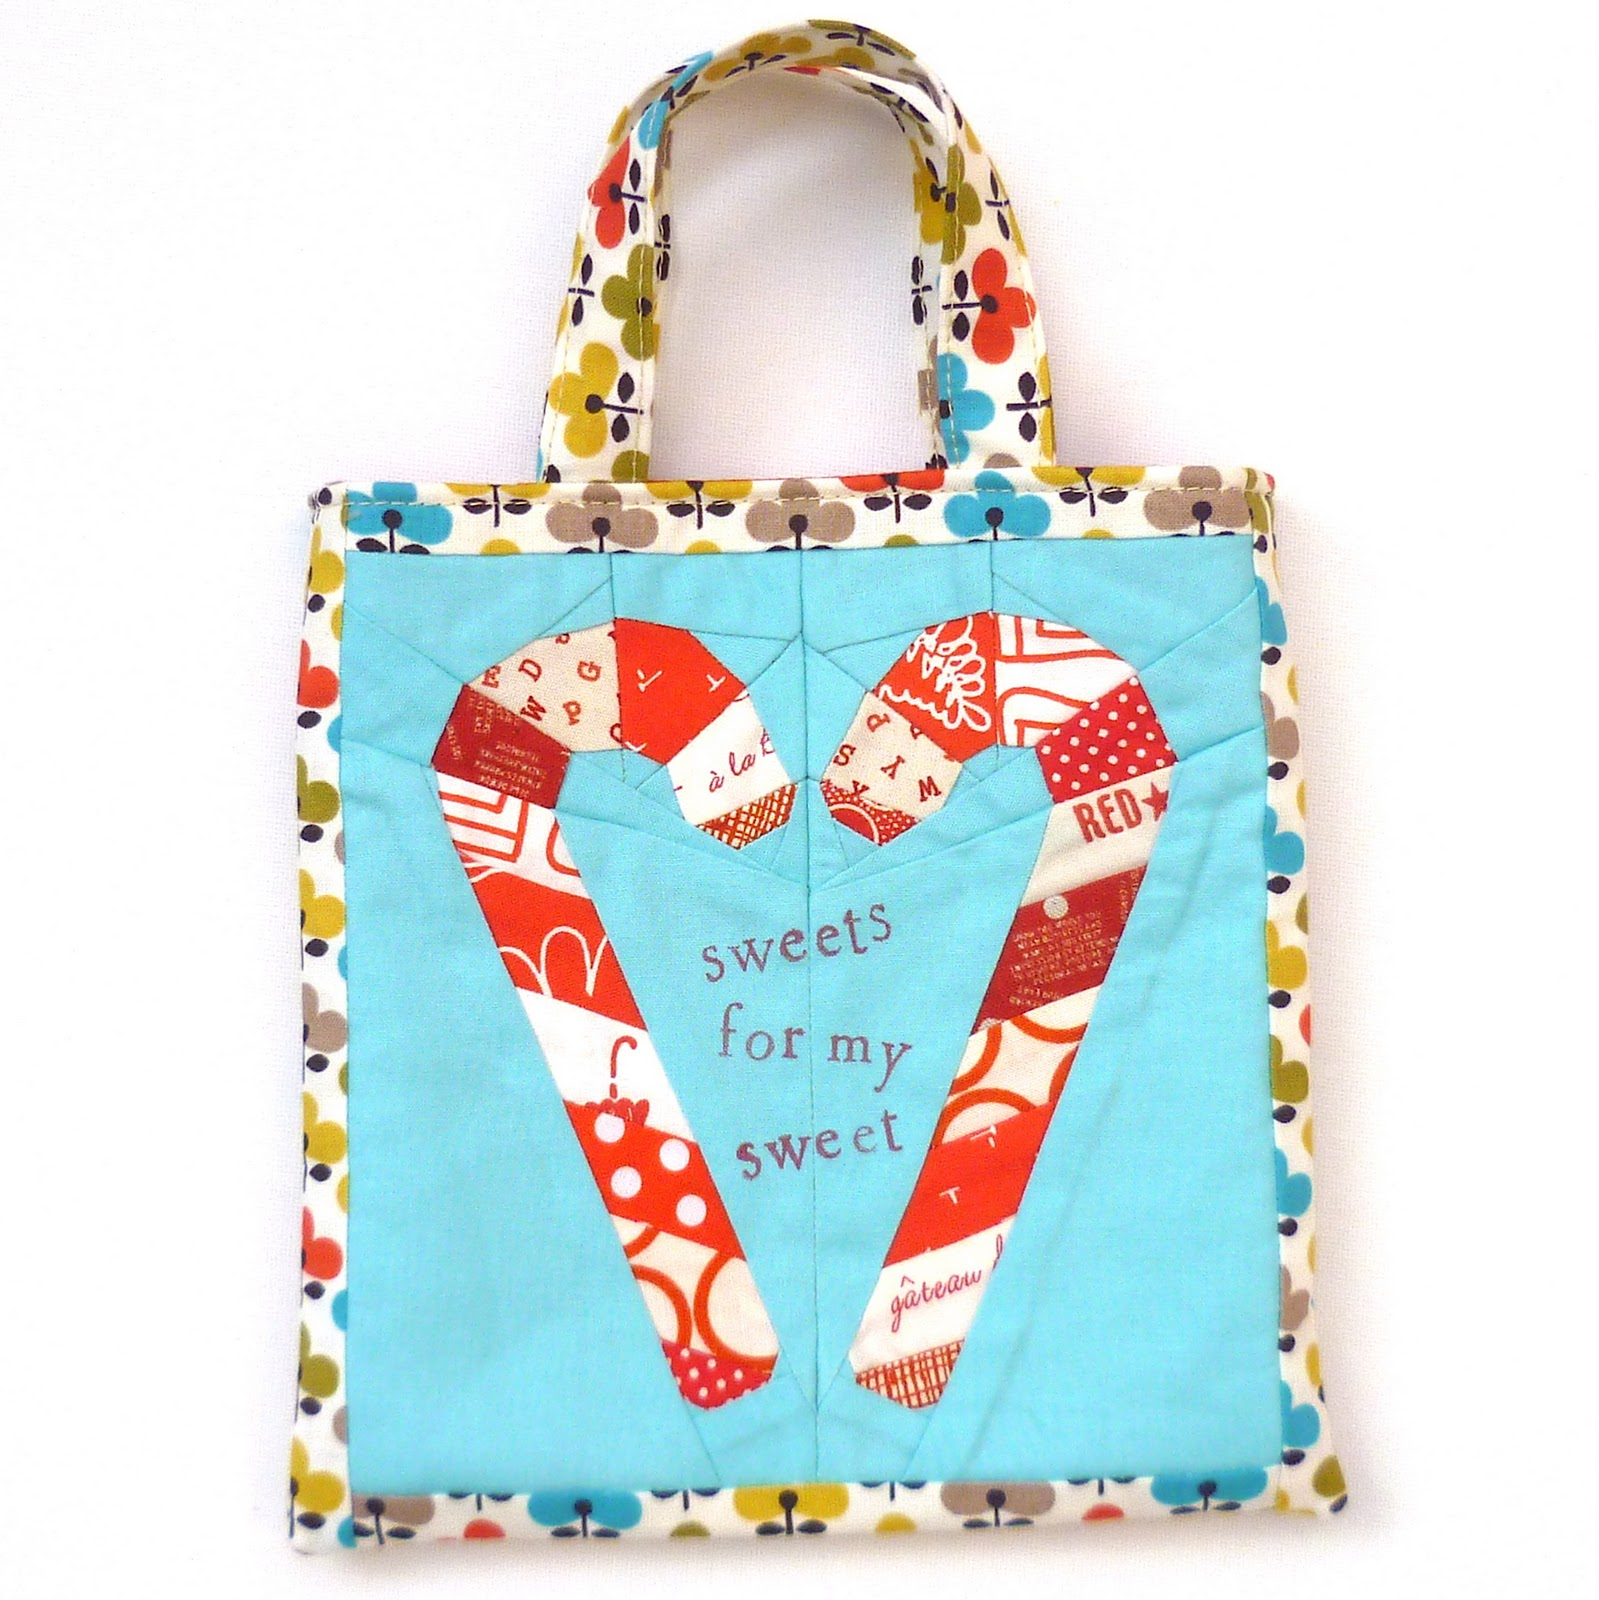 Verykerryberry Candy Cane Mini Tote Bag Tutorial